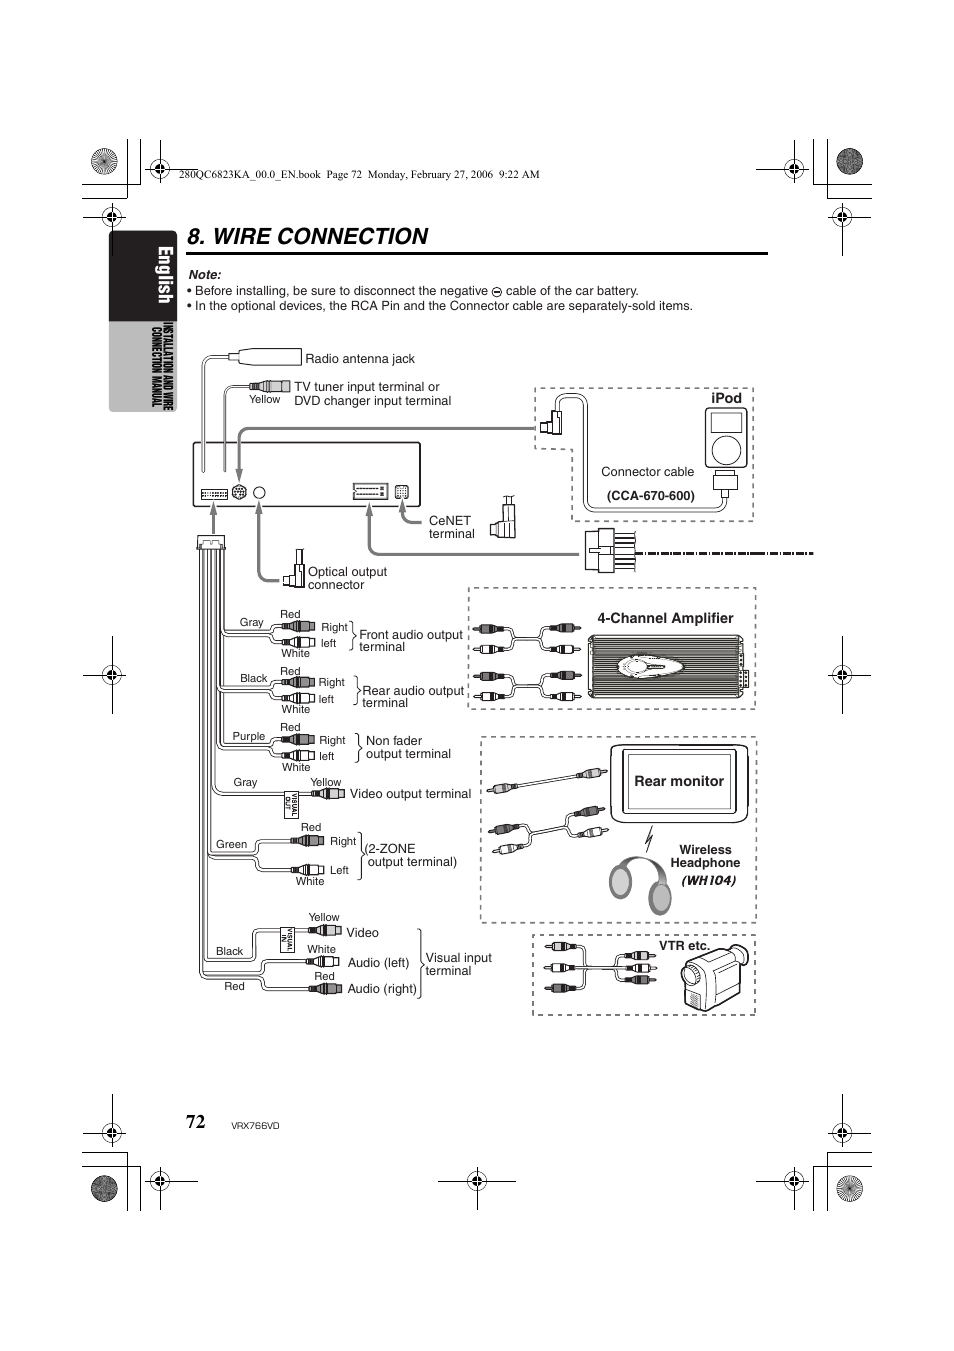 Wire connection, English | Clarion VRX766VD User Manual ... on